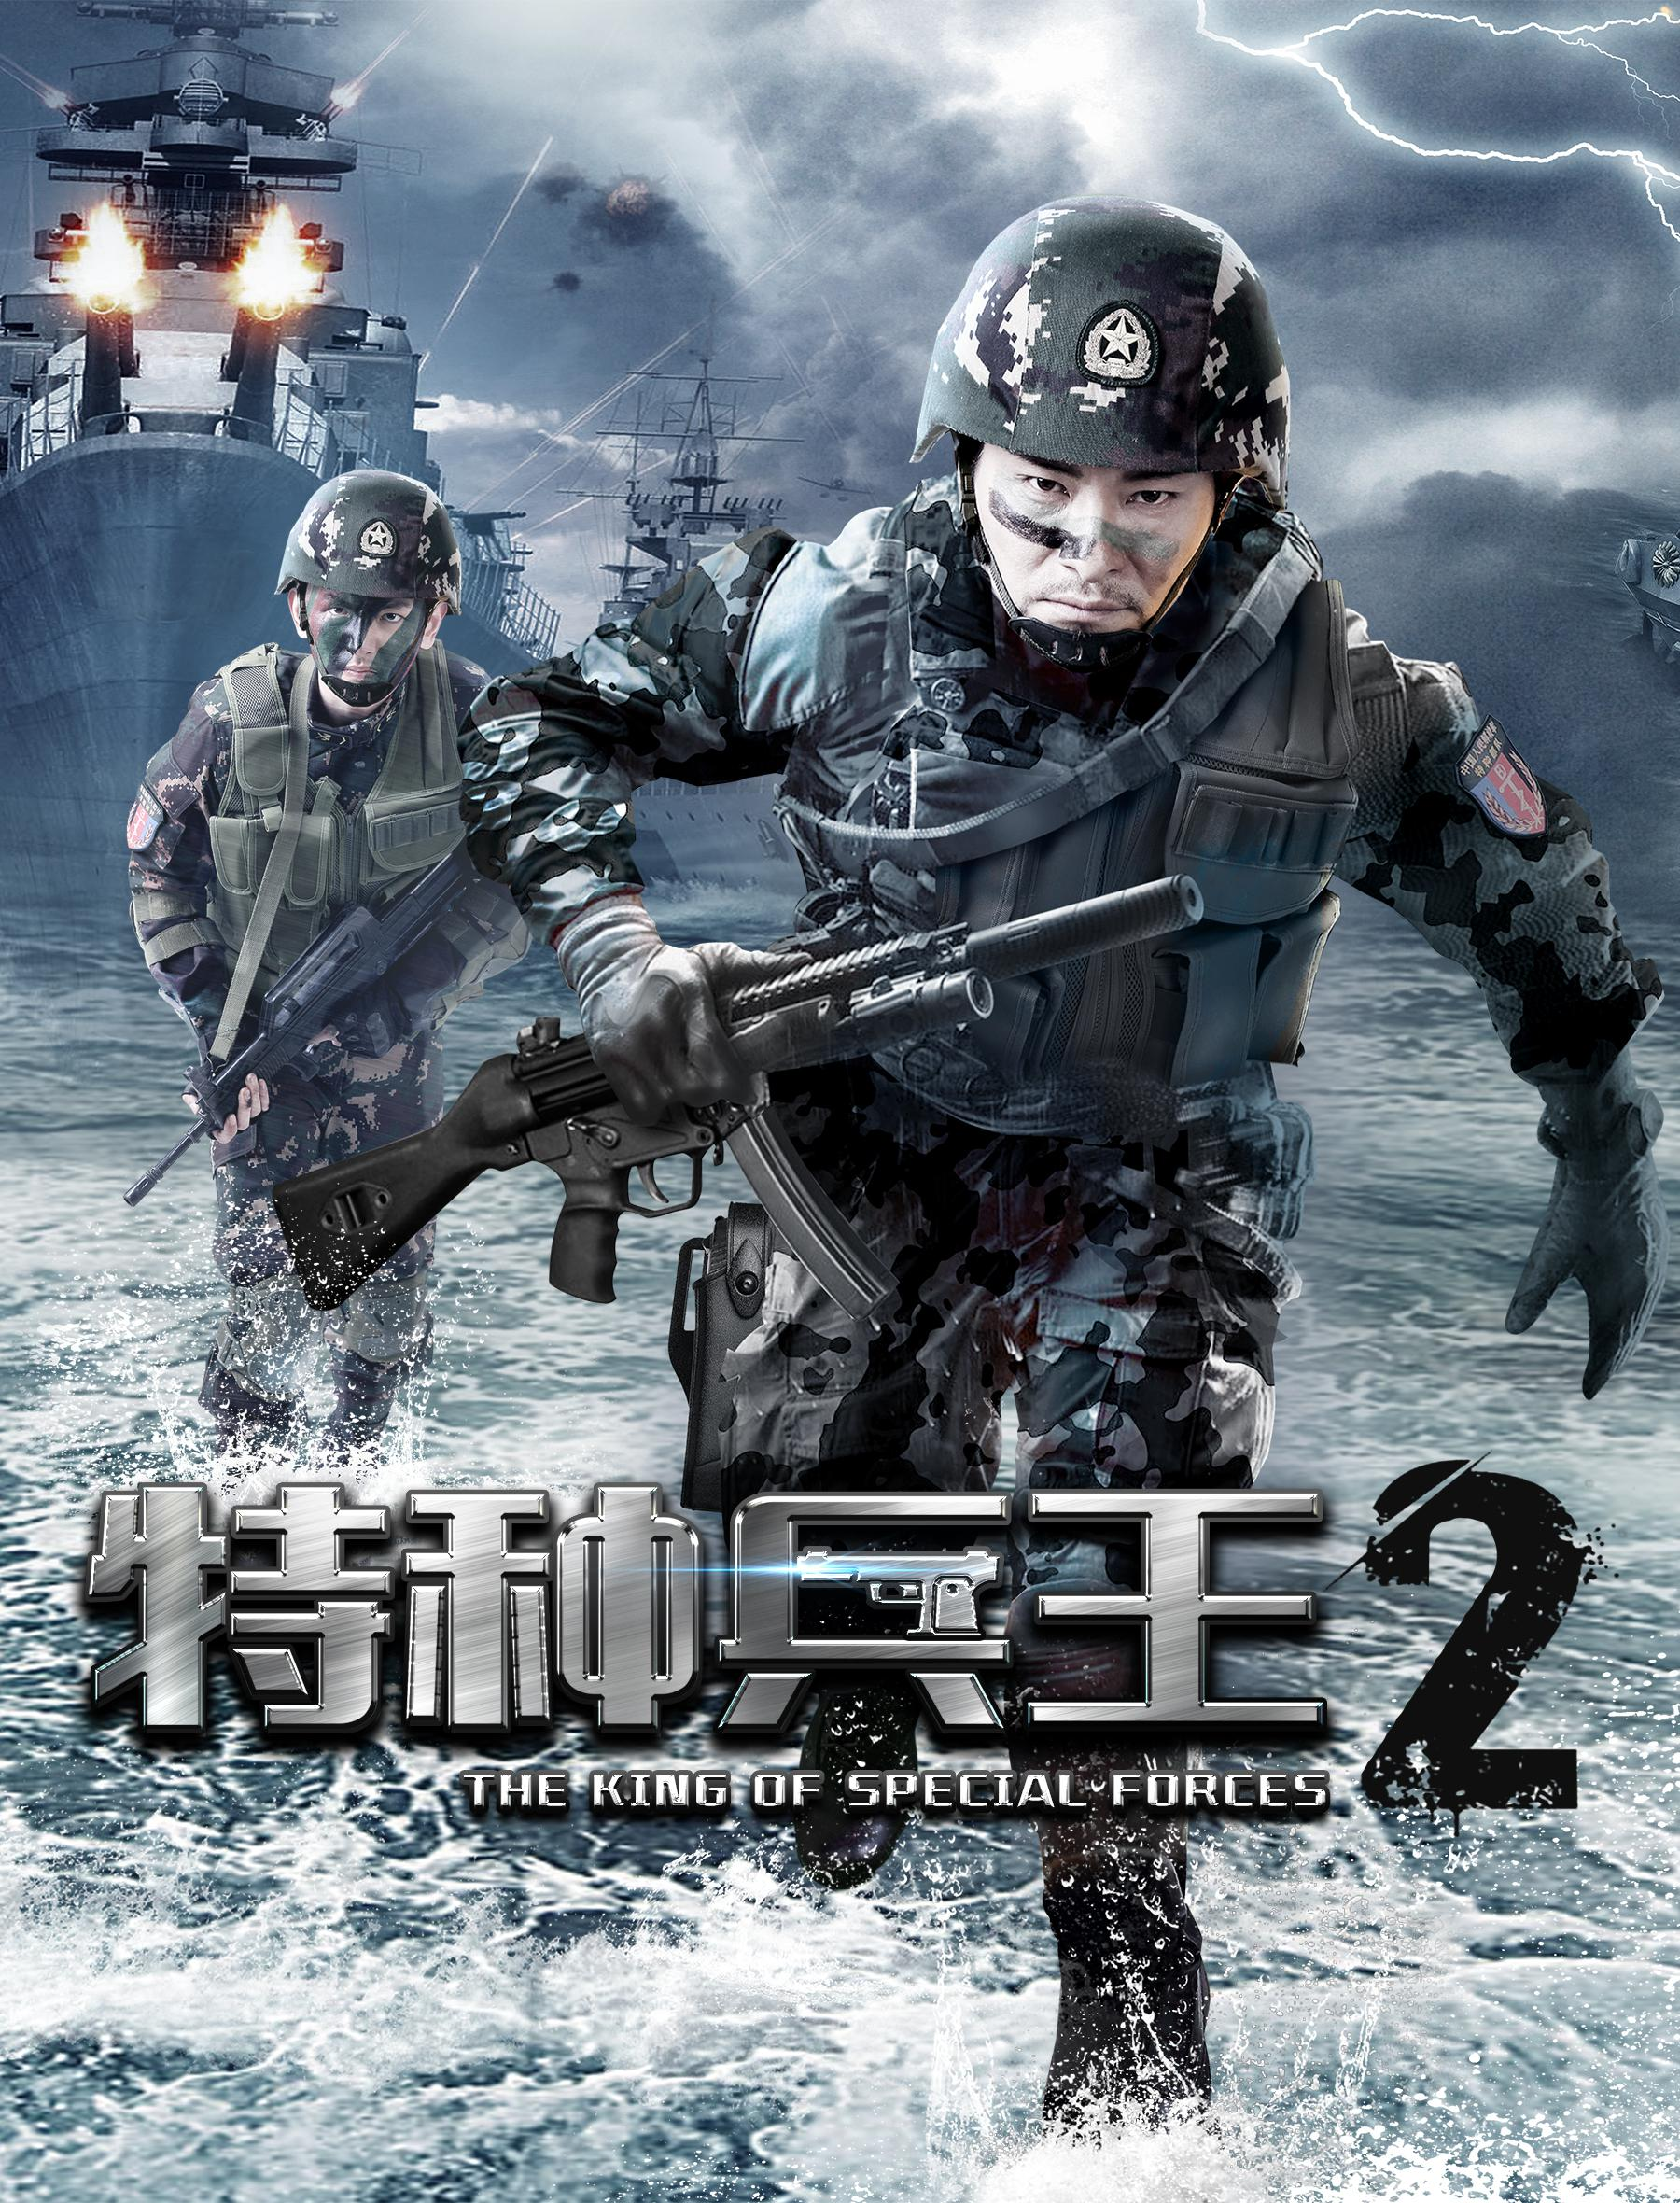 The King of Special Forces 2 (特種兵王2使命抉擇, 2017